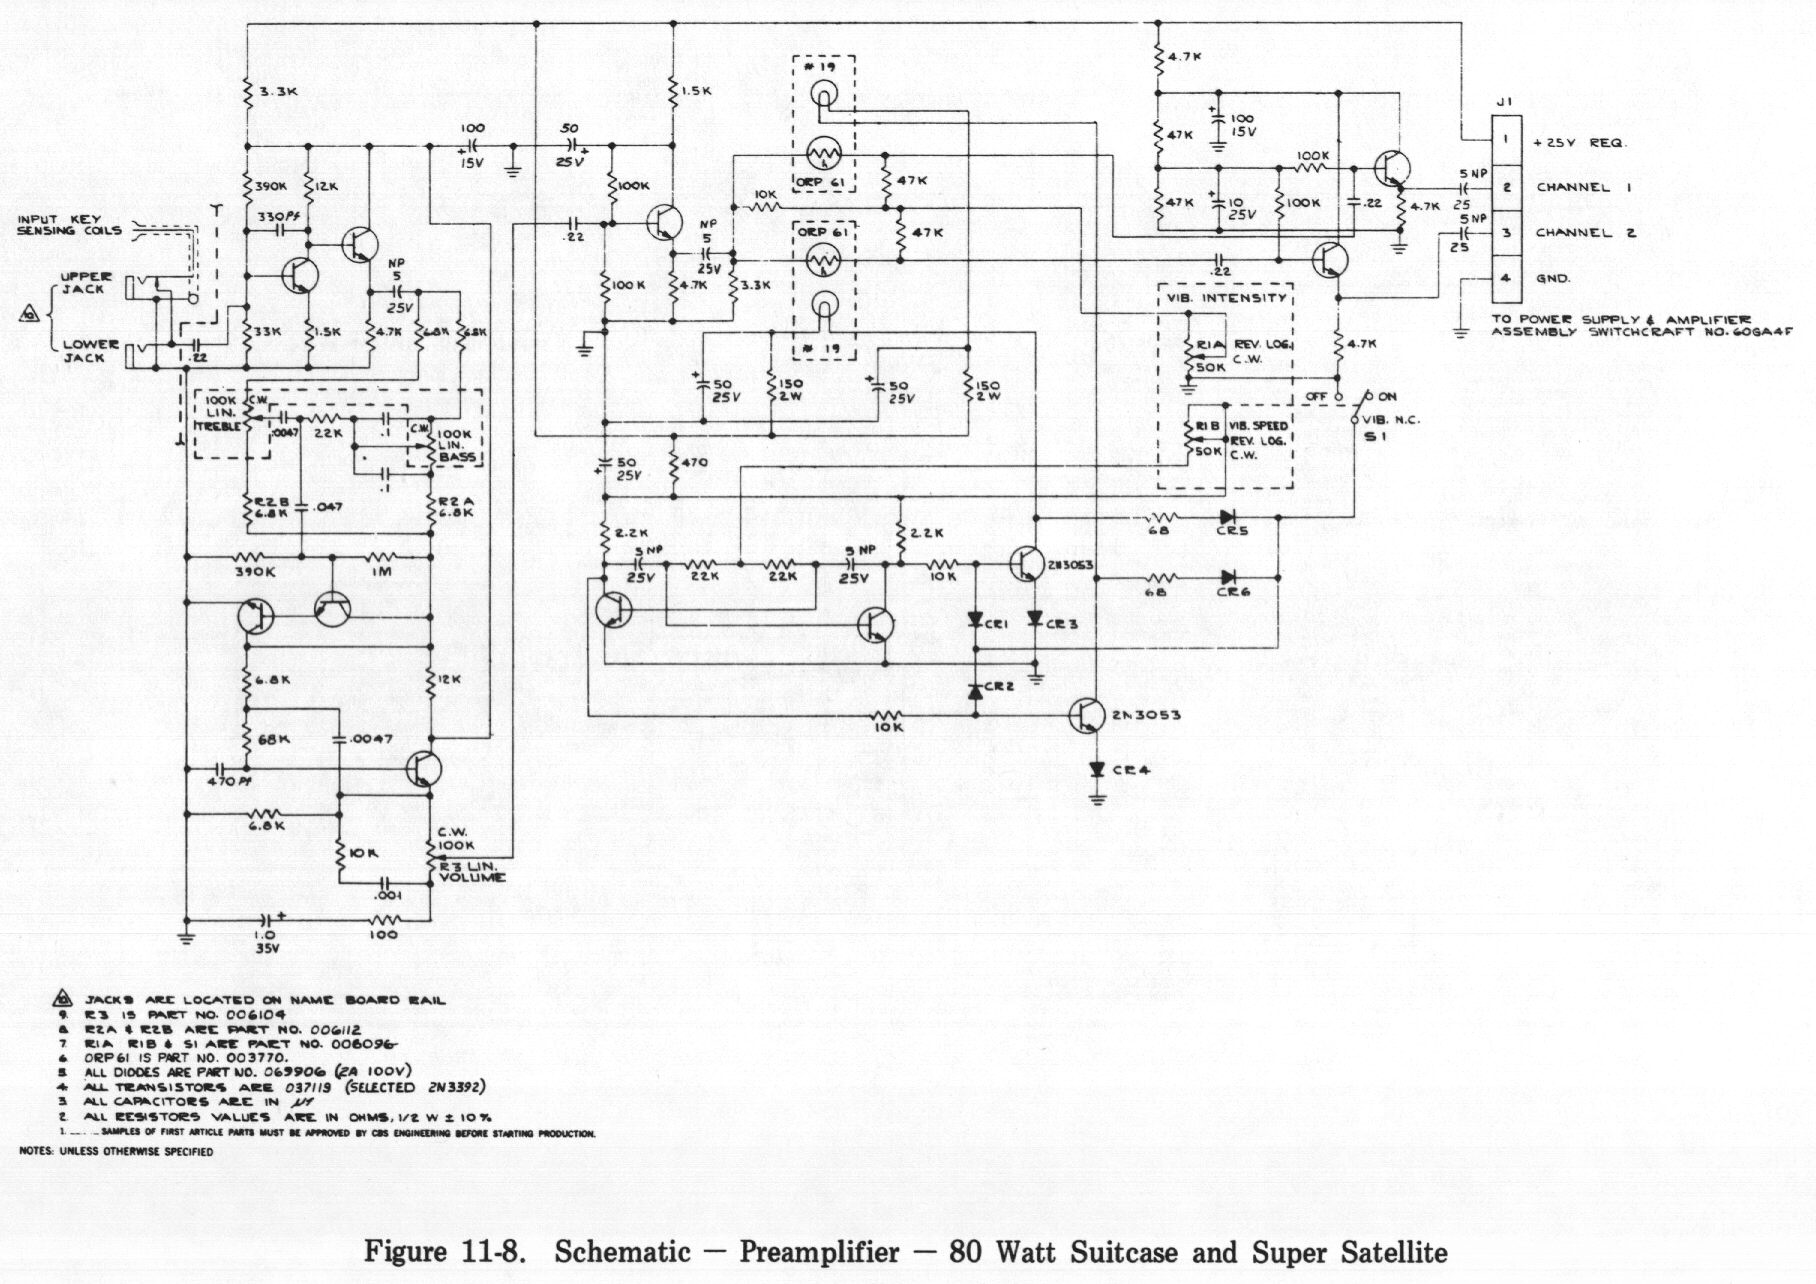 Peterson Wiring Diagram - Fusebox and Wiring Diagram wires-chaos - wires -chaos.parliamoneassieme.itdiagram database